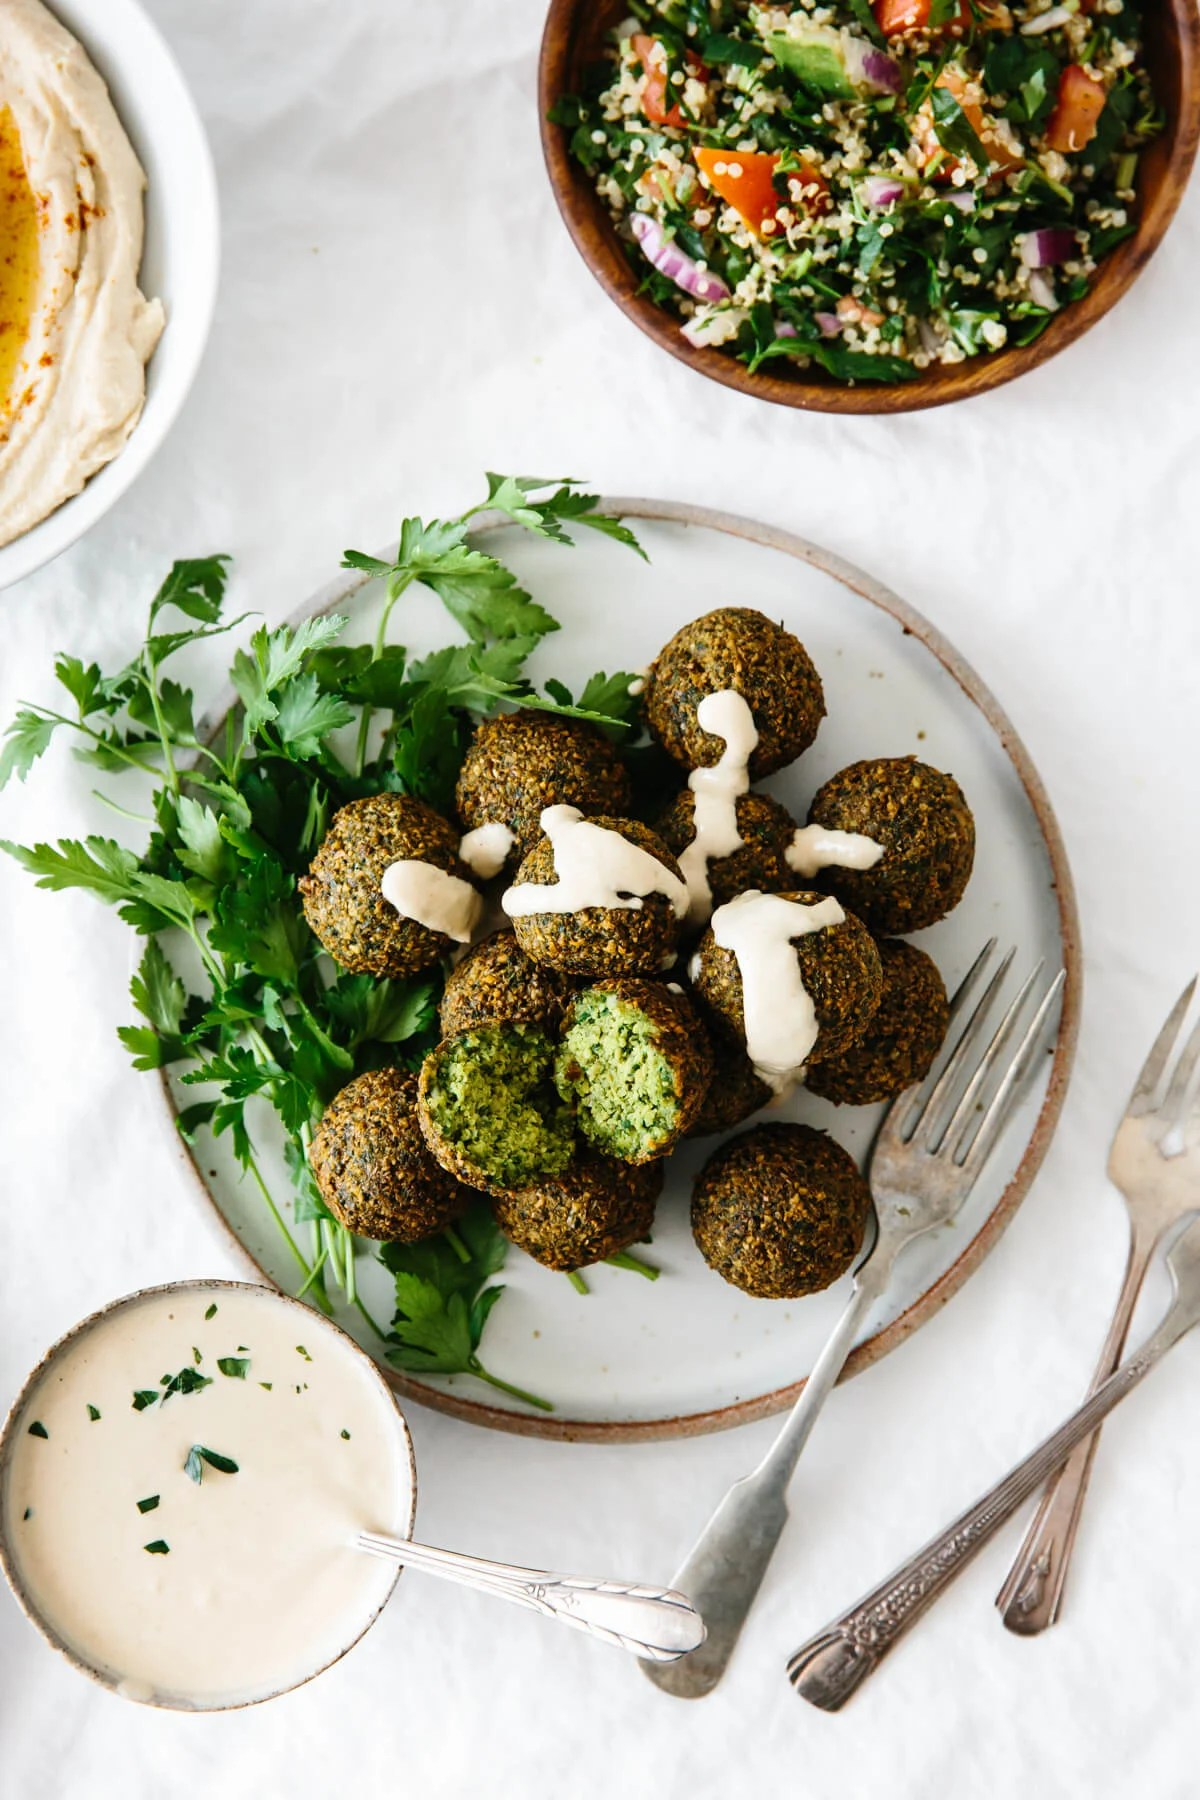 A plate of falafel next to hummus, tahini sauce, and salad.